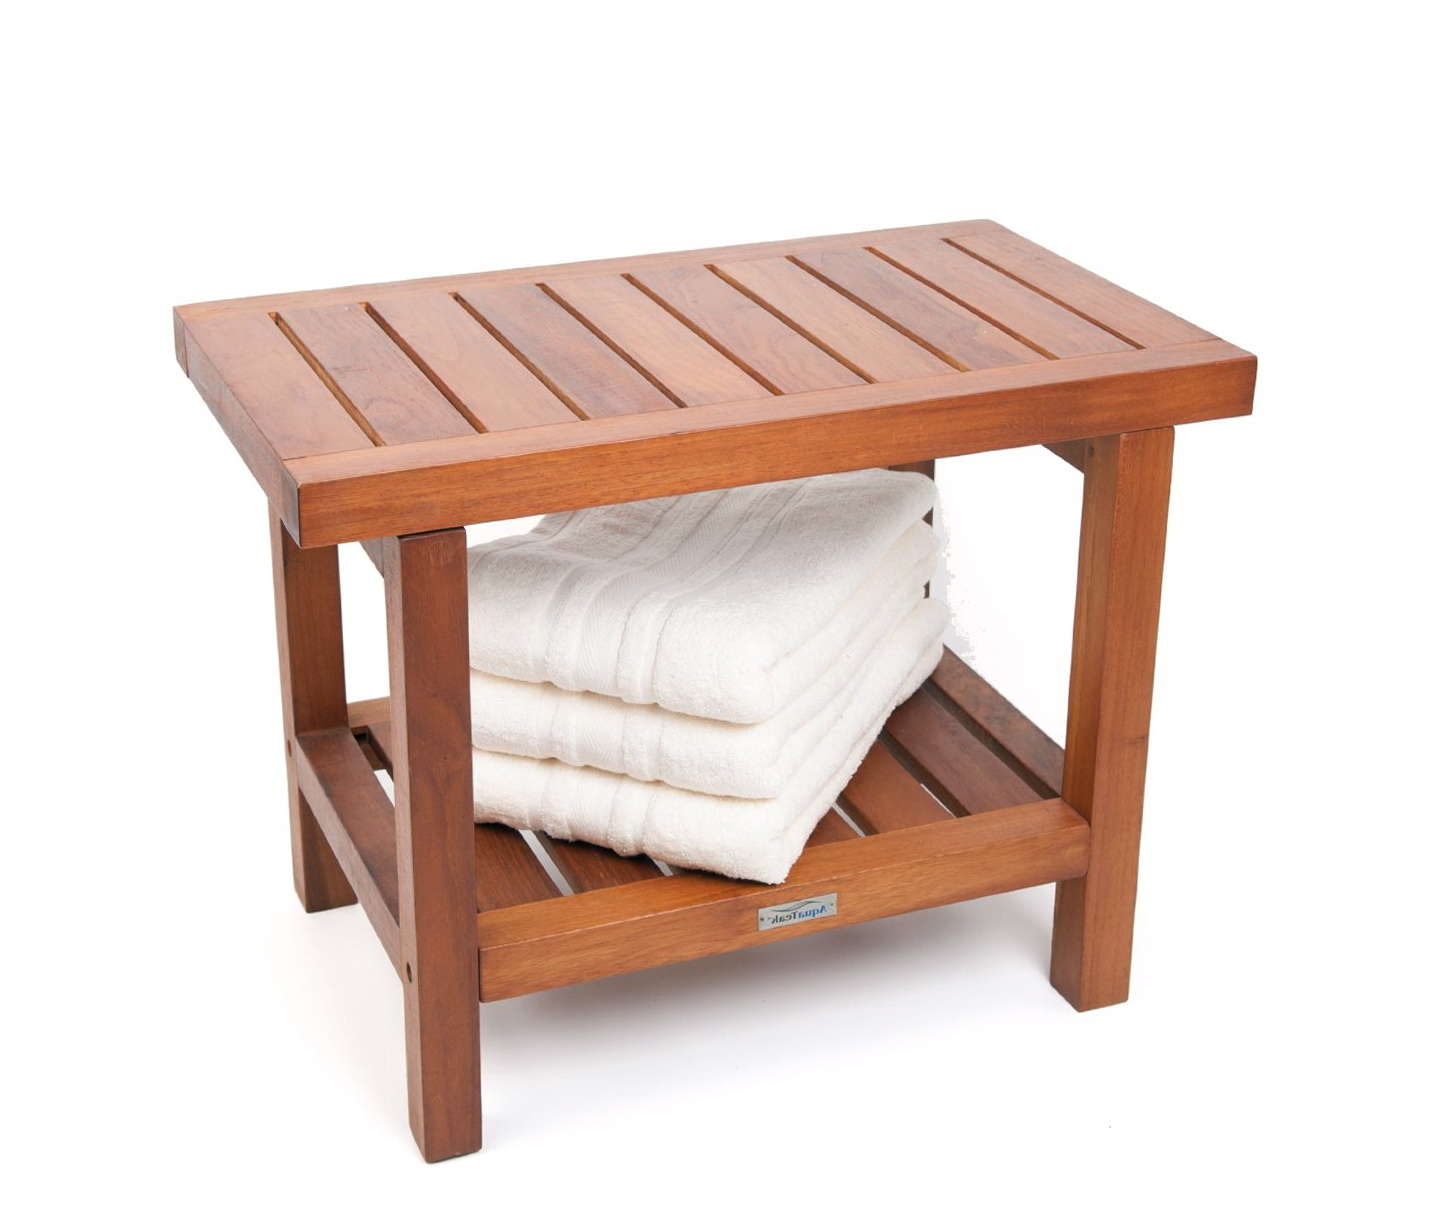 Teak Wood Shower Bench Plans Home Design Ideas